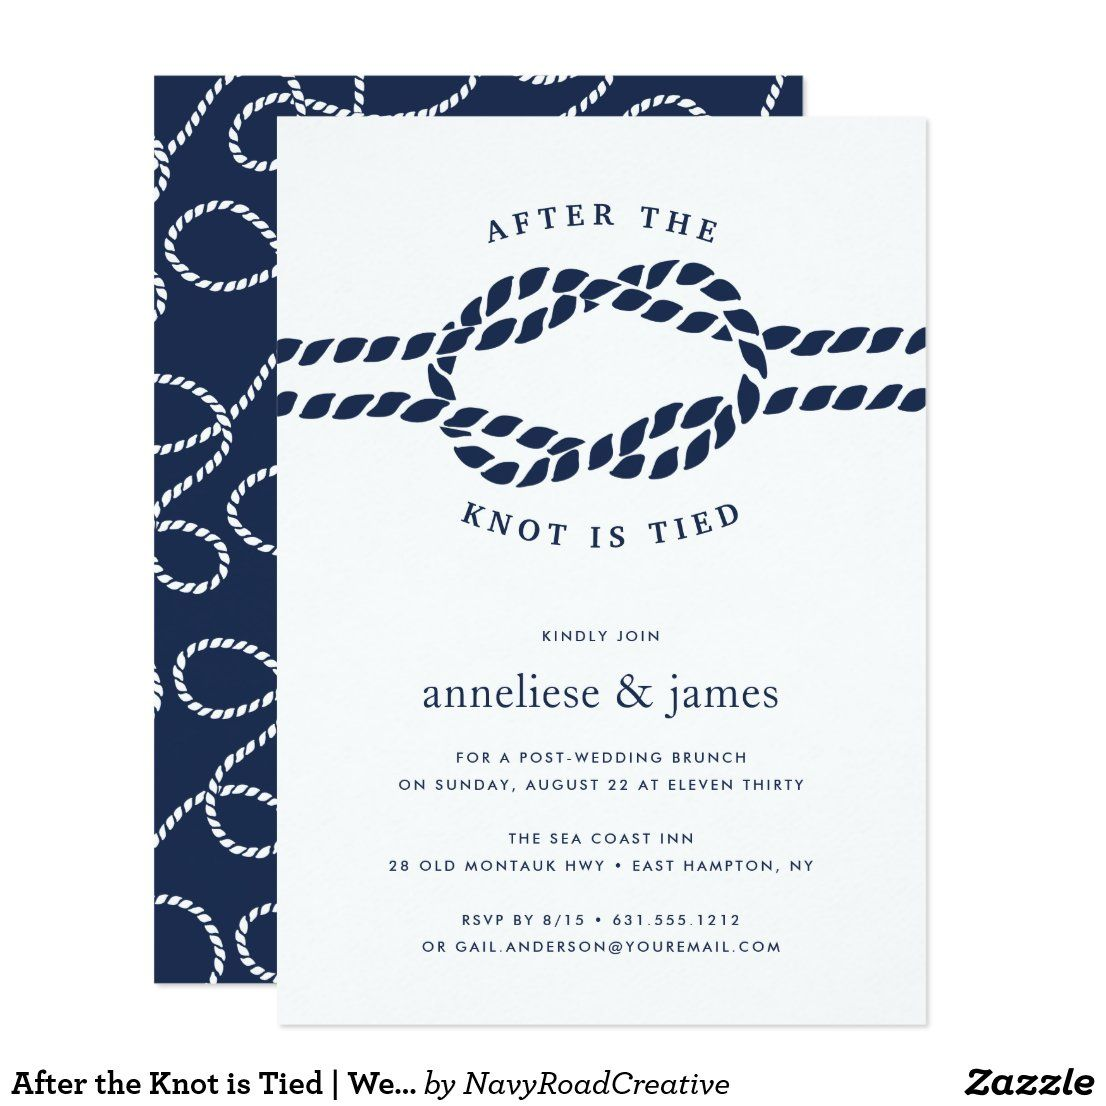 After The Knot Is Tied Wedding Brunch Invitation Zazzle Com In 2020 Wedding Brunch Invitations Brunch Invitations Brunch Wedding